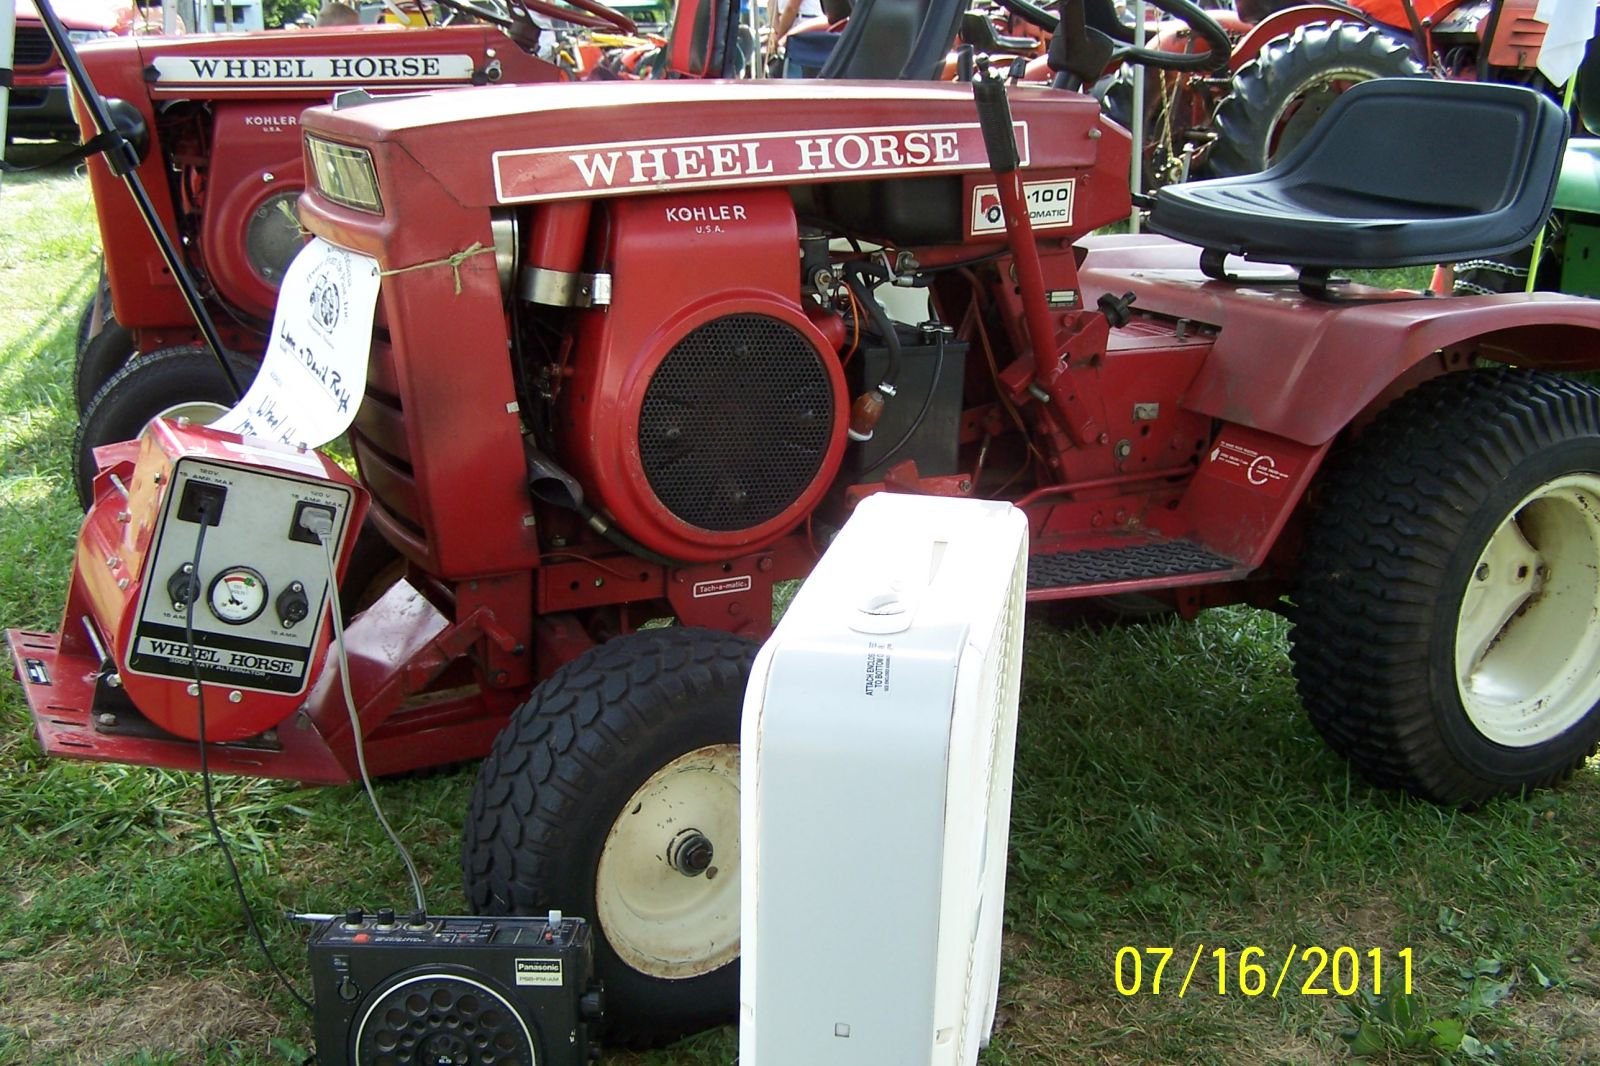 1975 B-100 and Wheel Horse 3000 Watt Generator